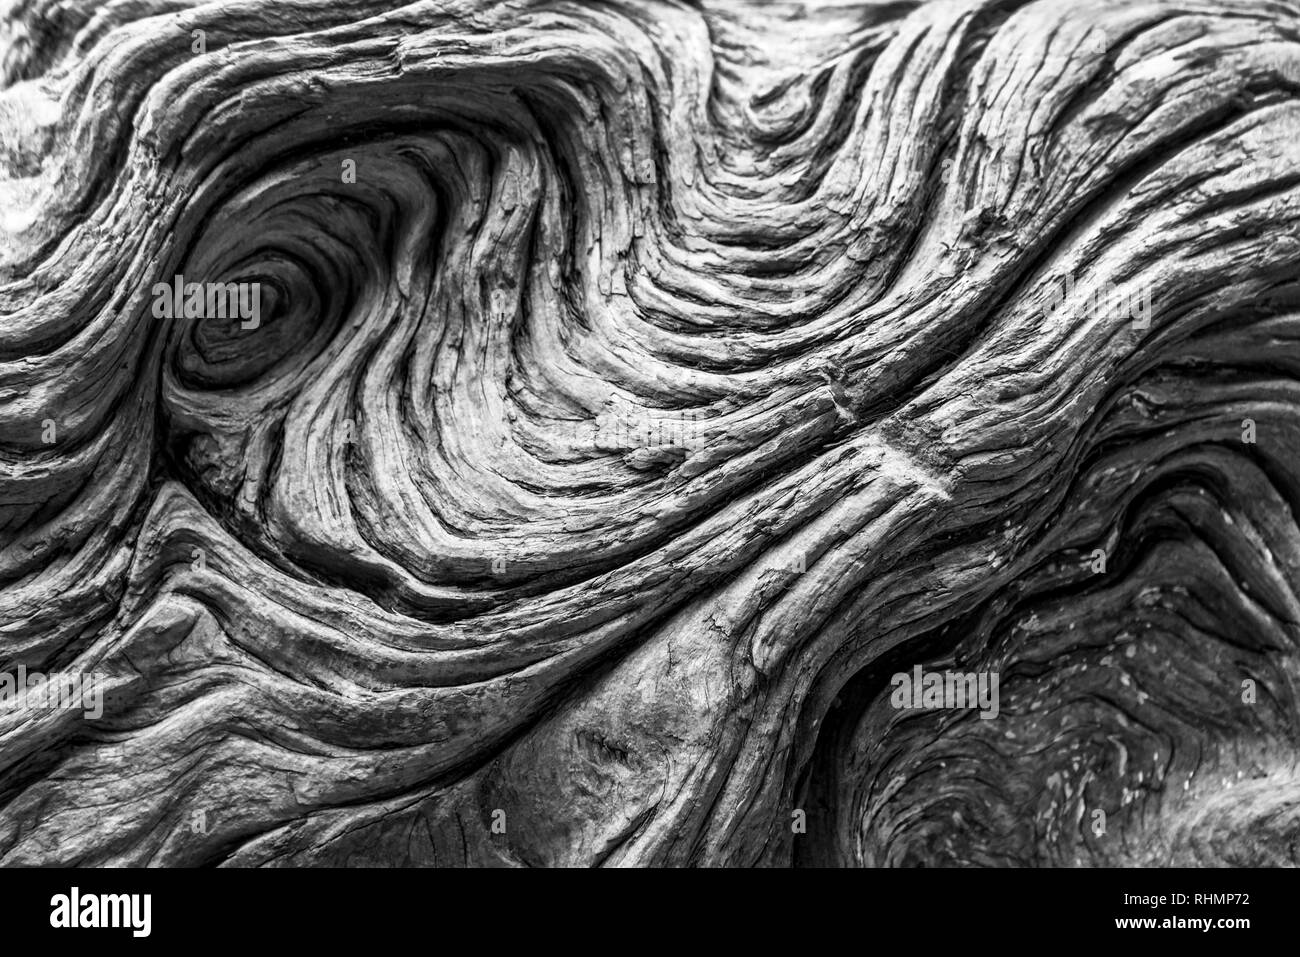 Driftwood detail. Black and white natural textured background - Stock Image